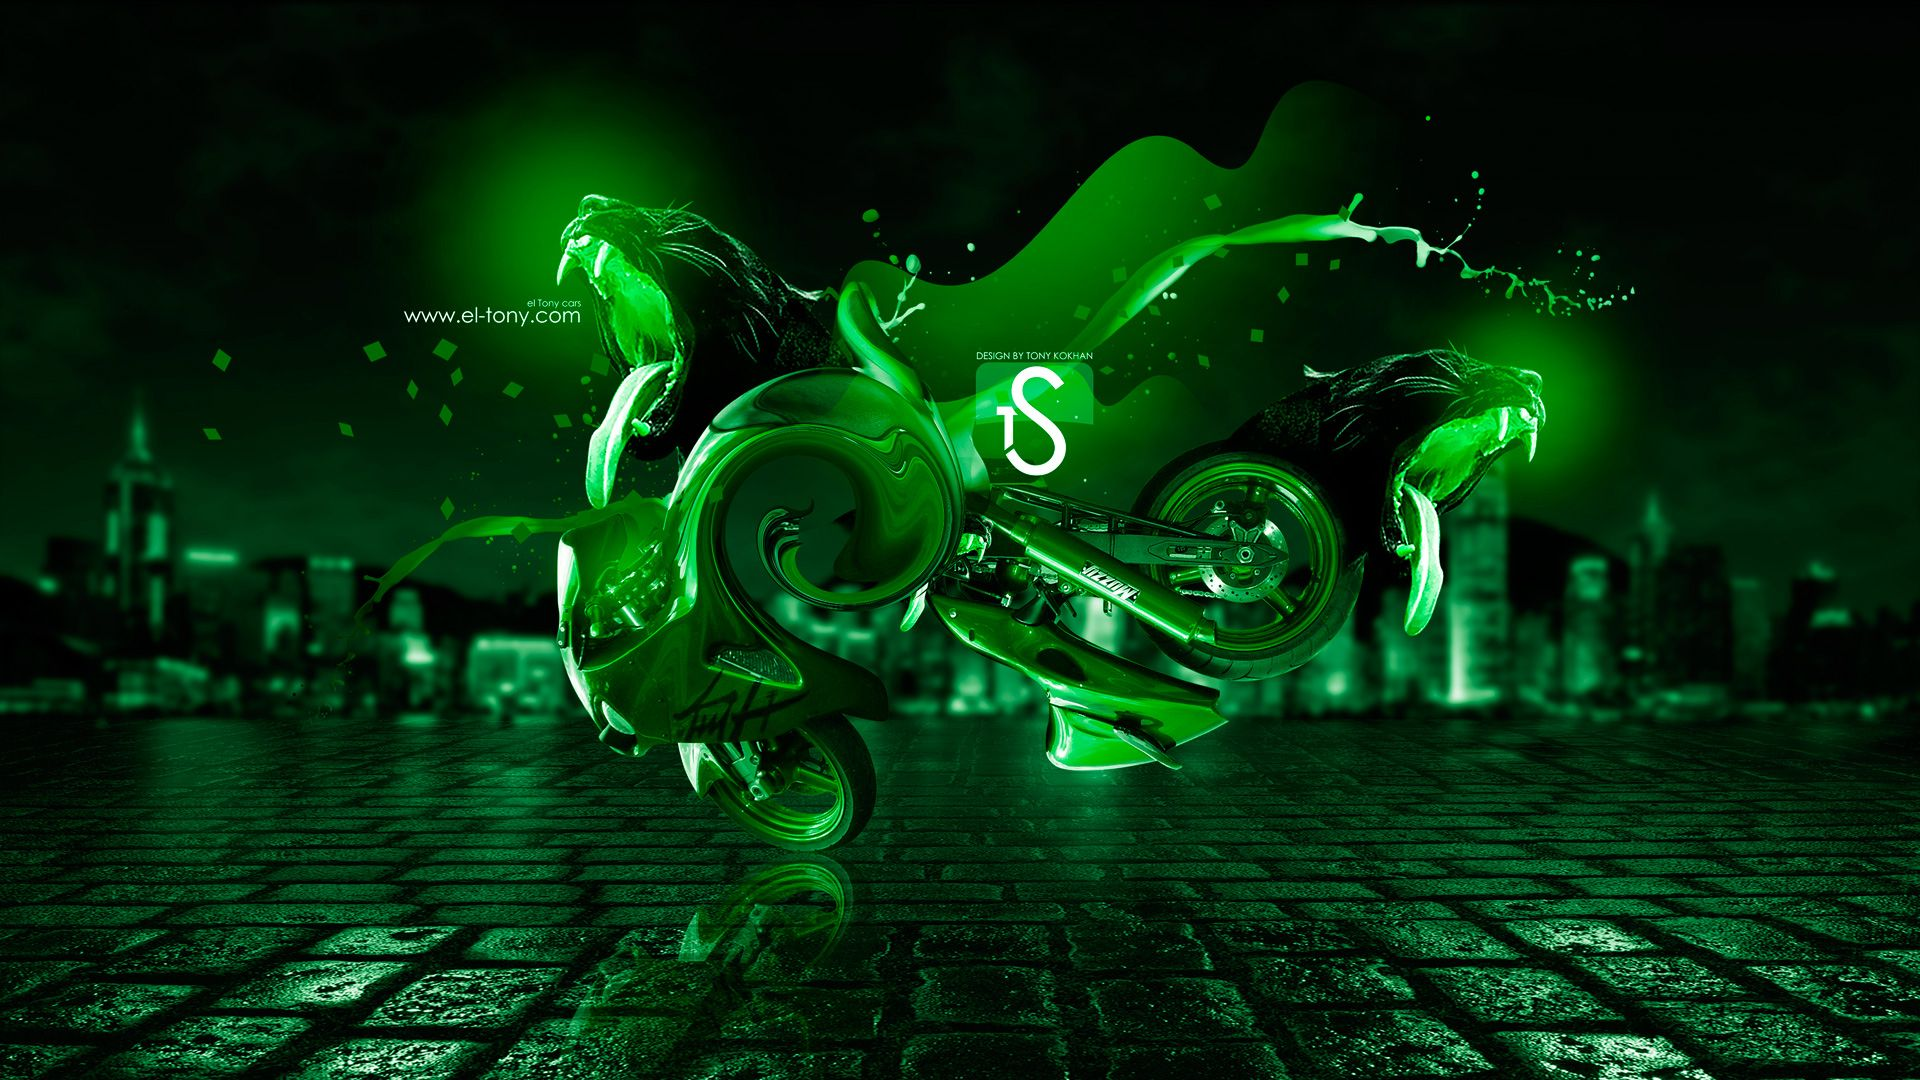 Cool Green wallpaper background